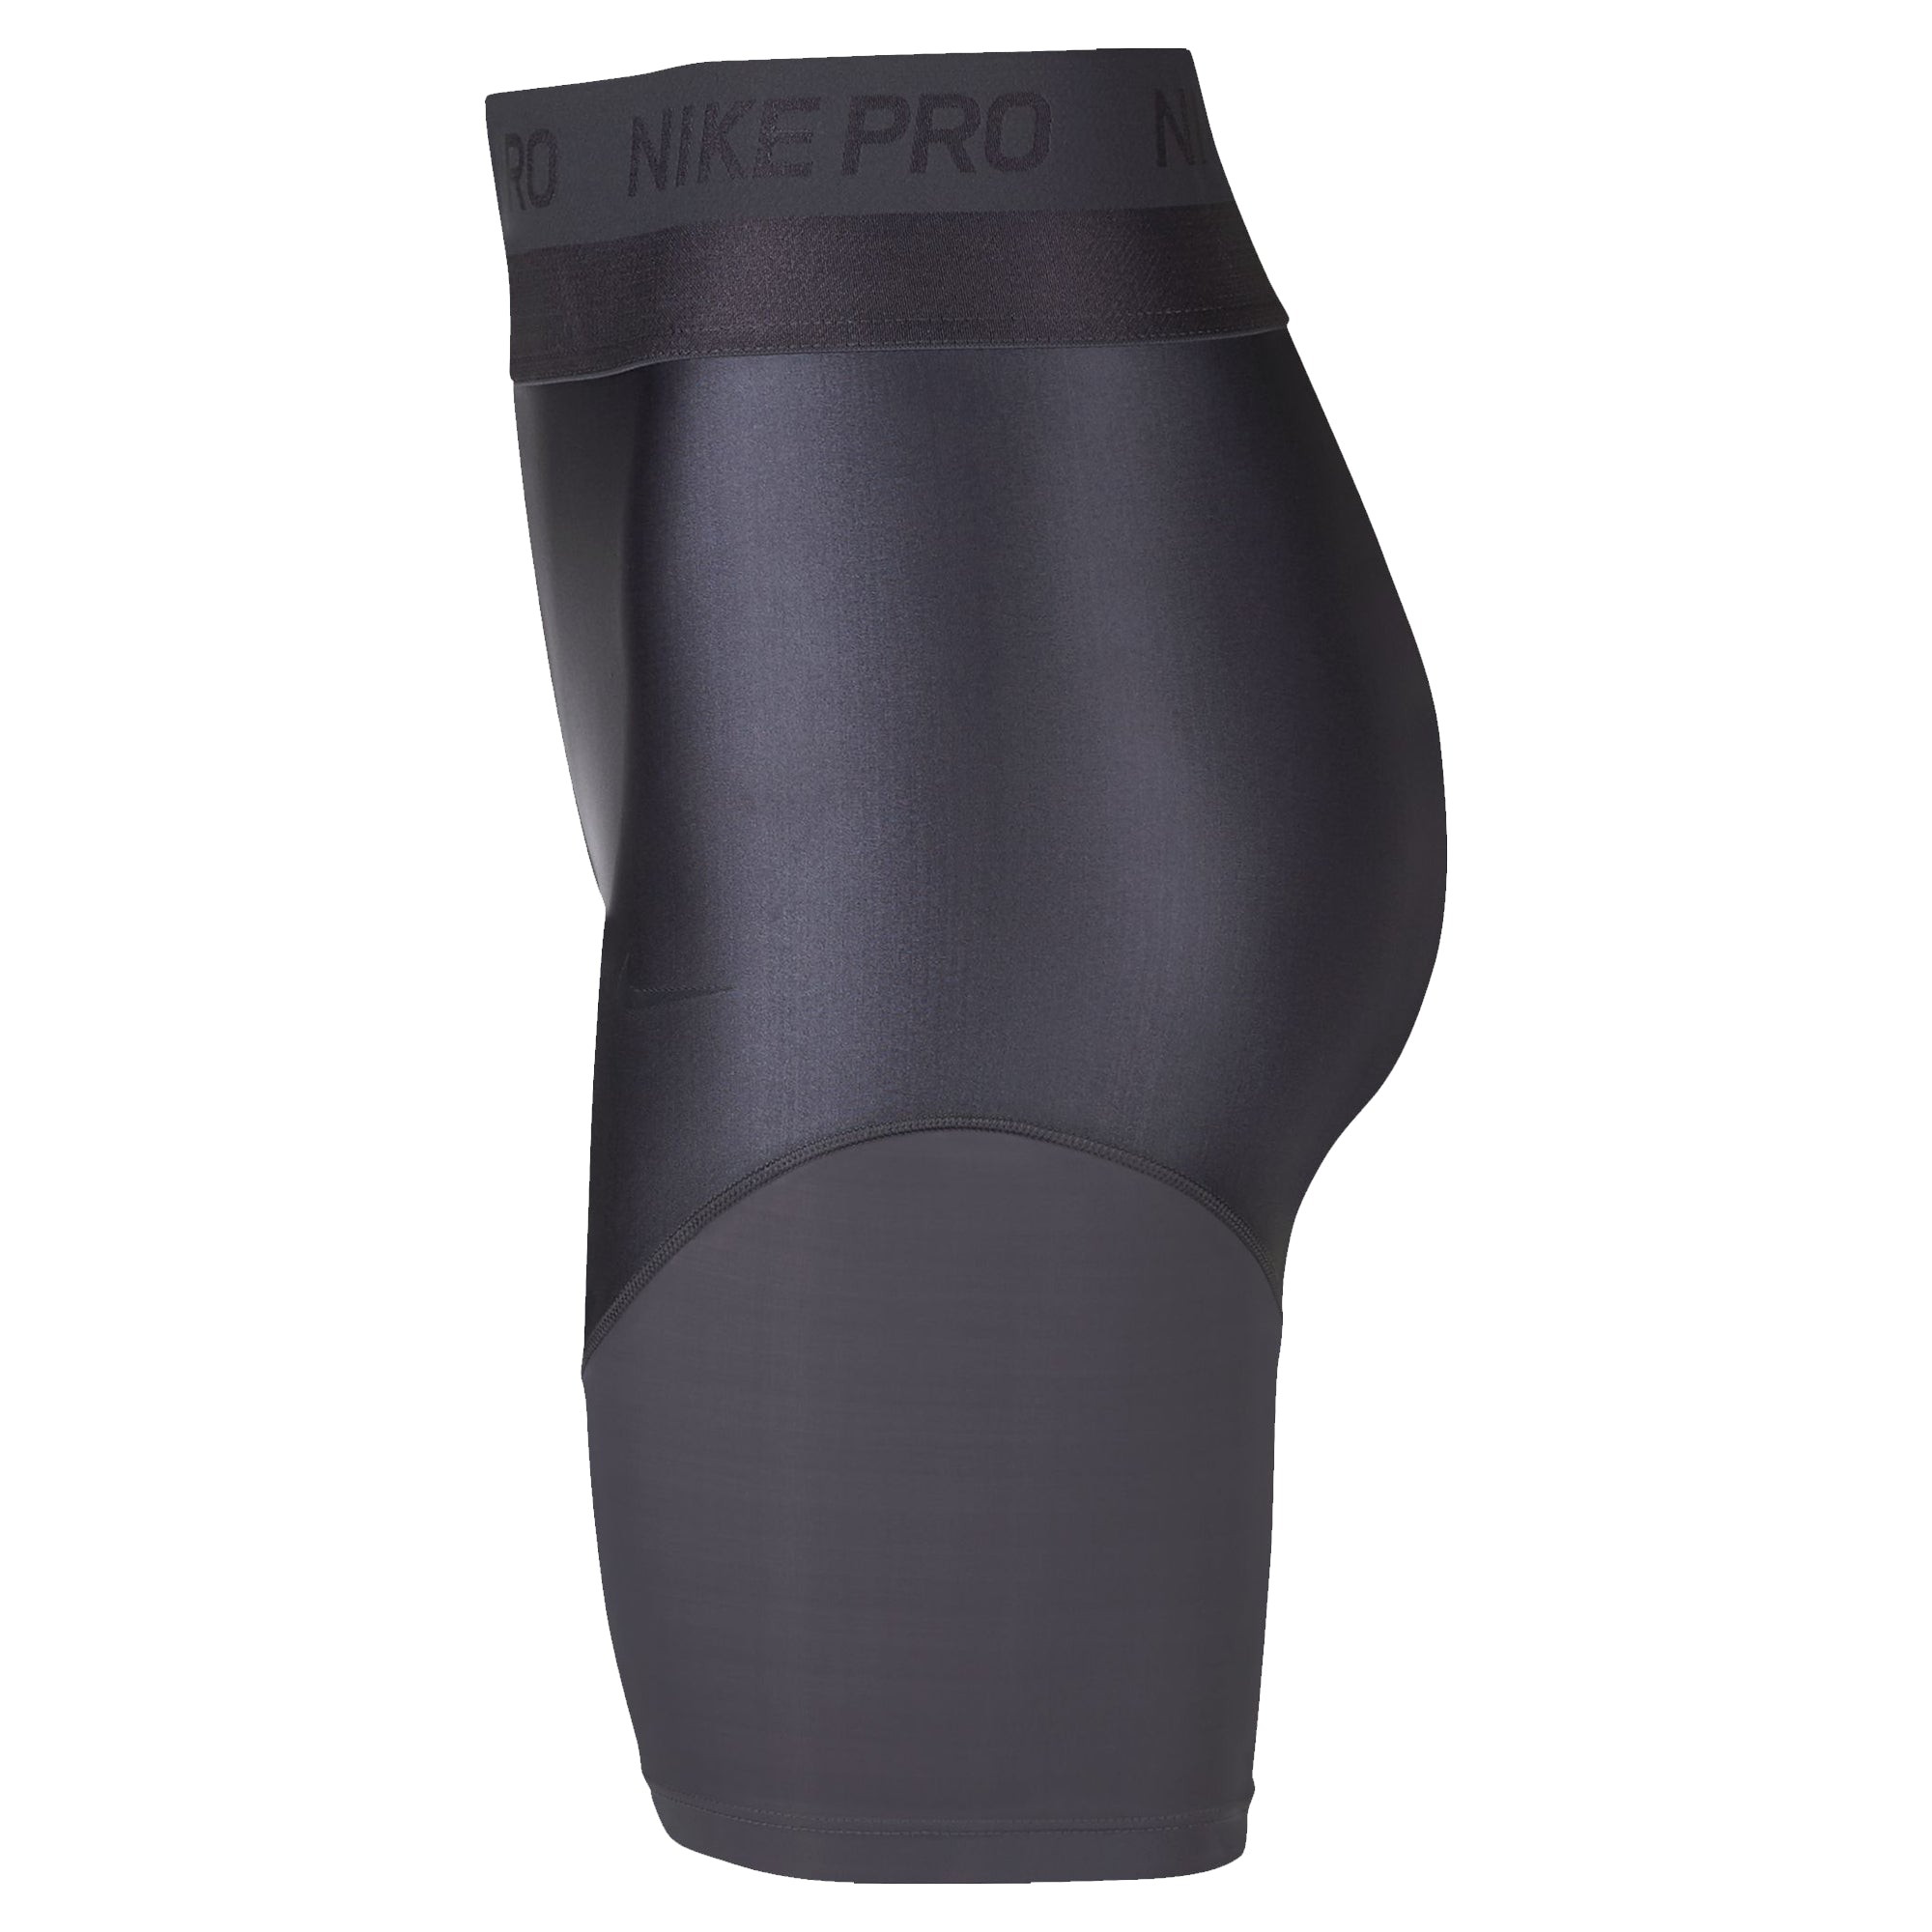 Nike M NP hprcl TGHT Tights Herren Running heres.ai